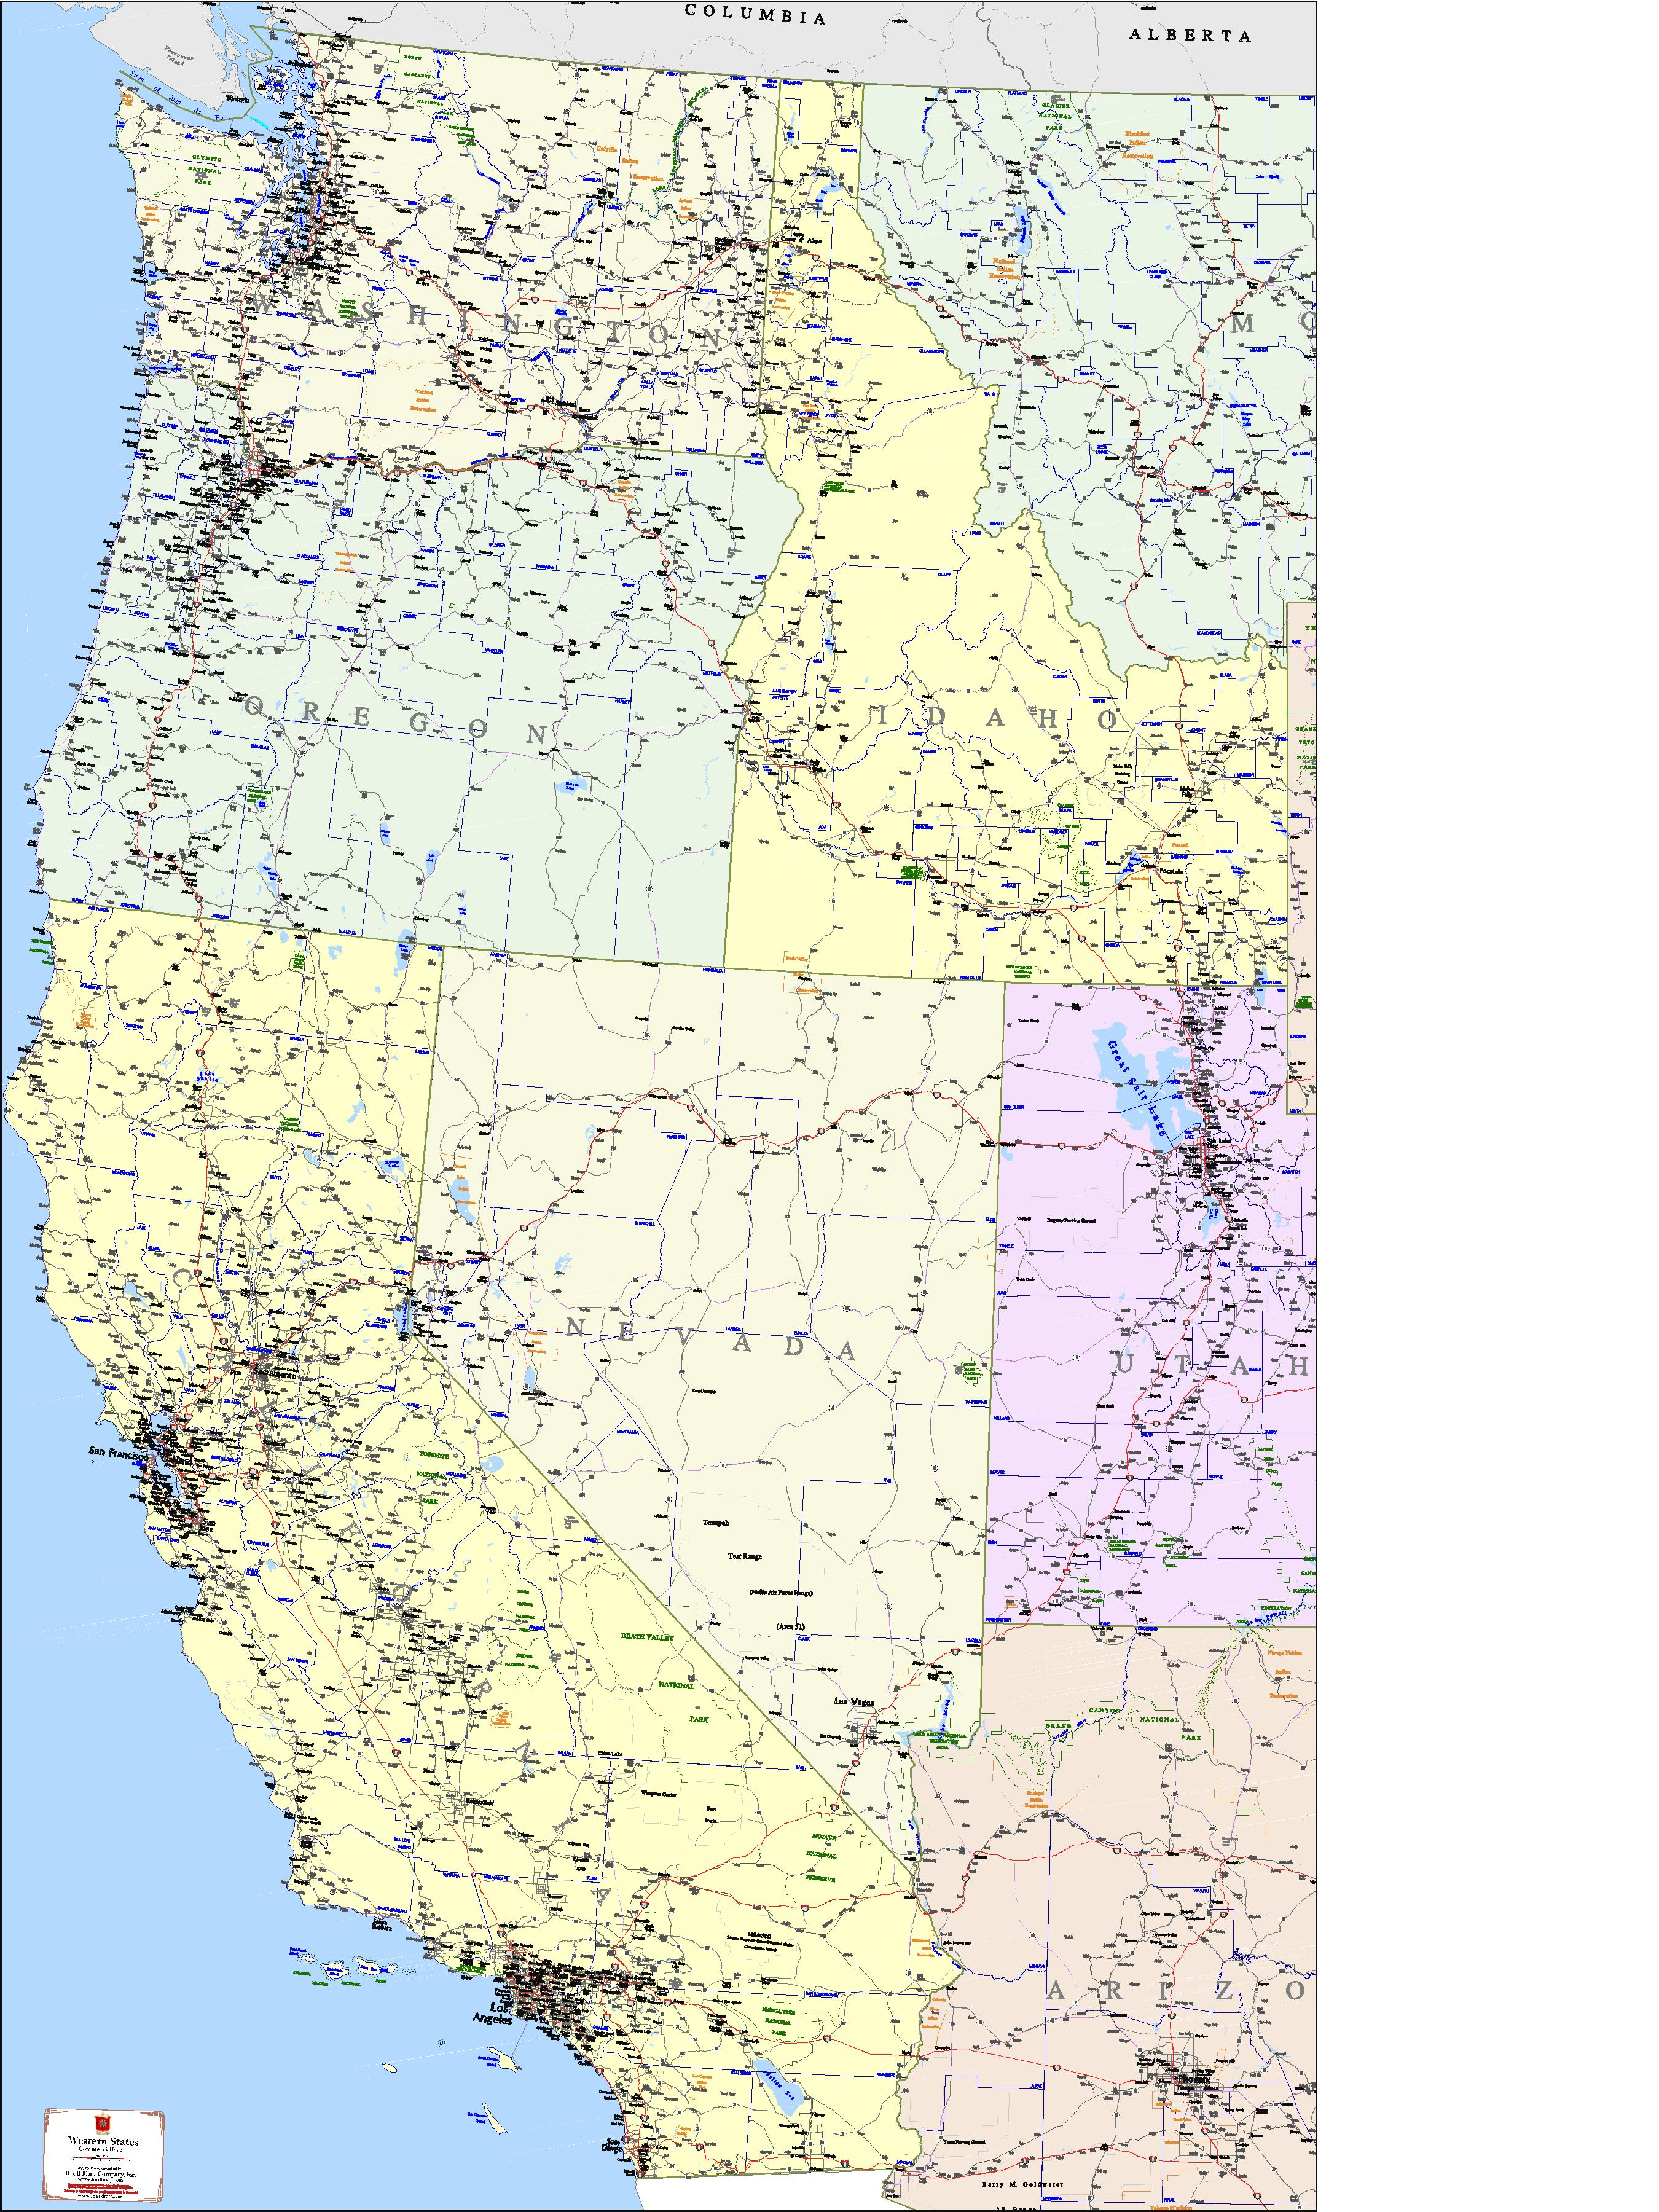 West Coast States Map - Kroll Map Company